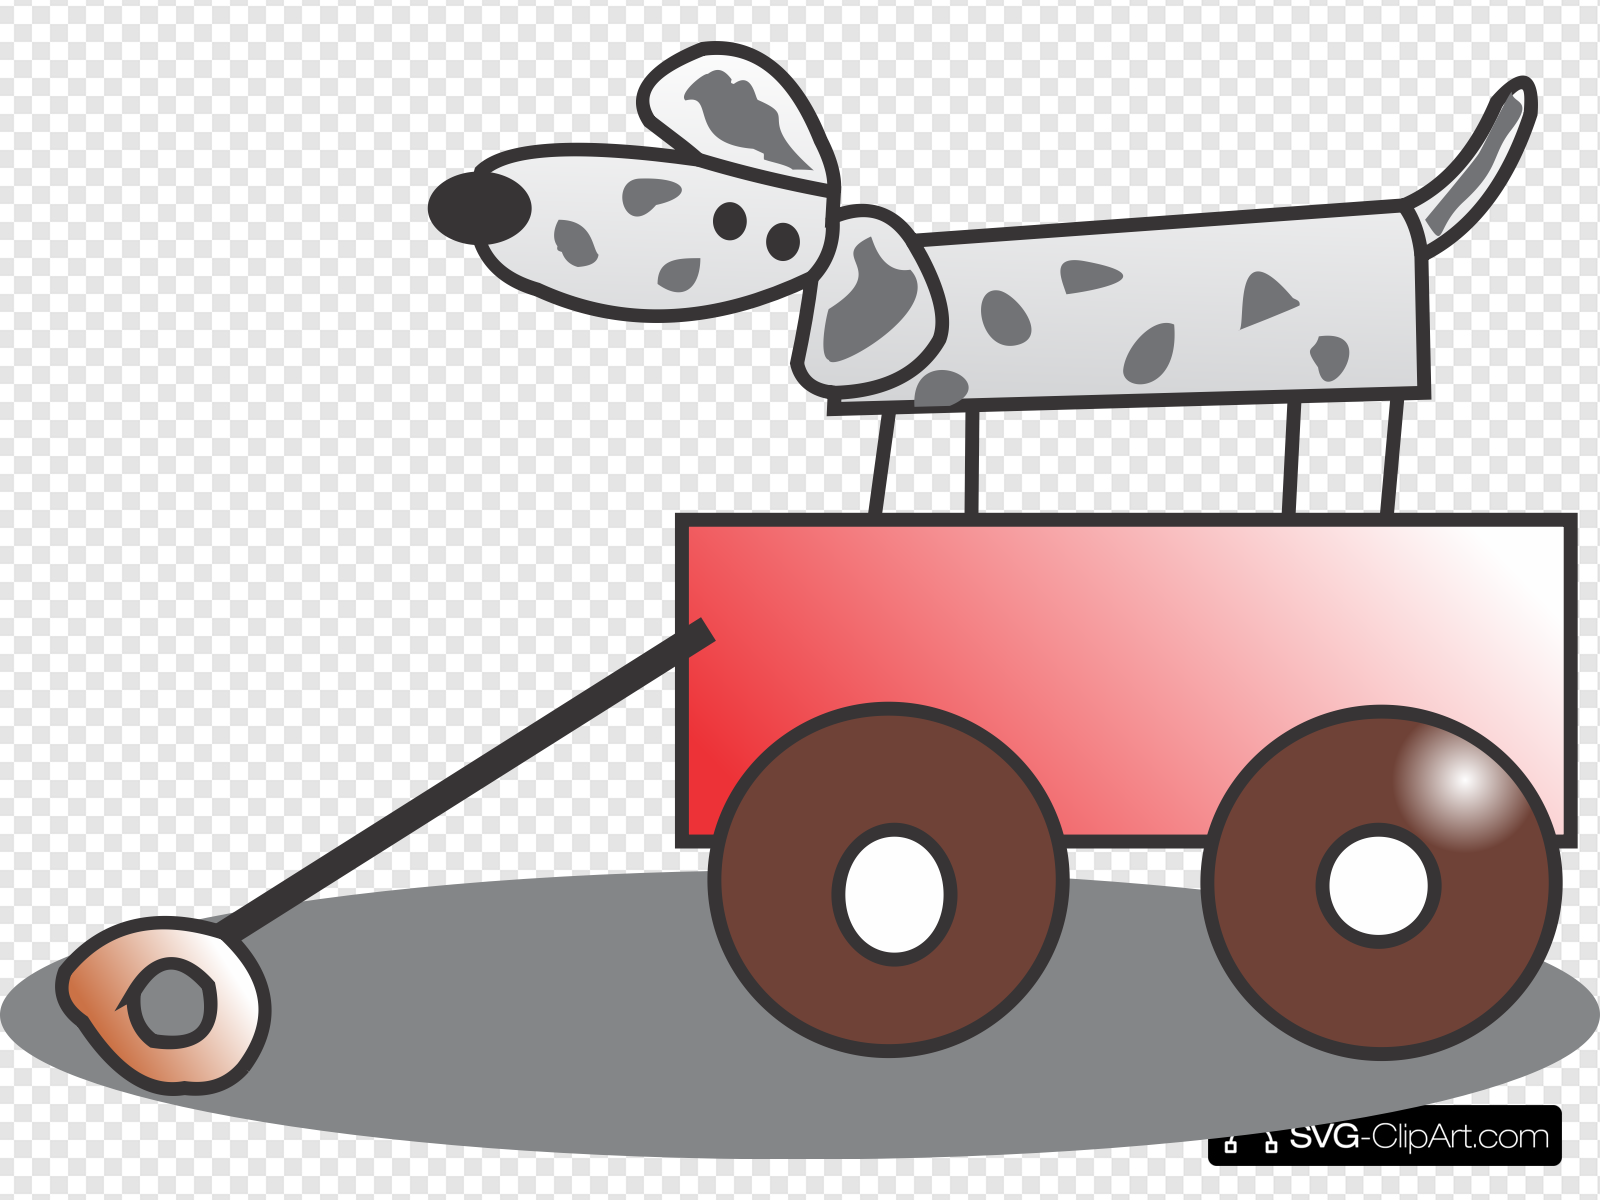 Wagon clipart toy wagon. Clip art icon and